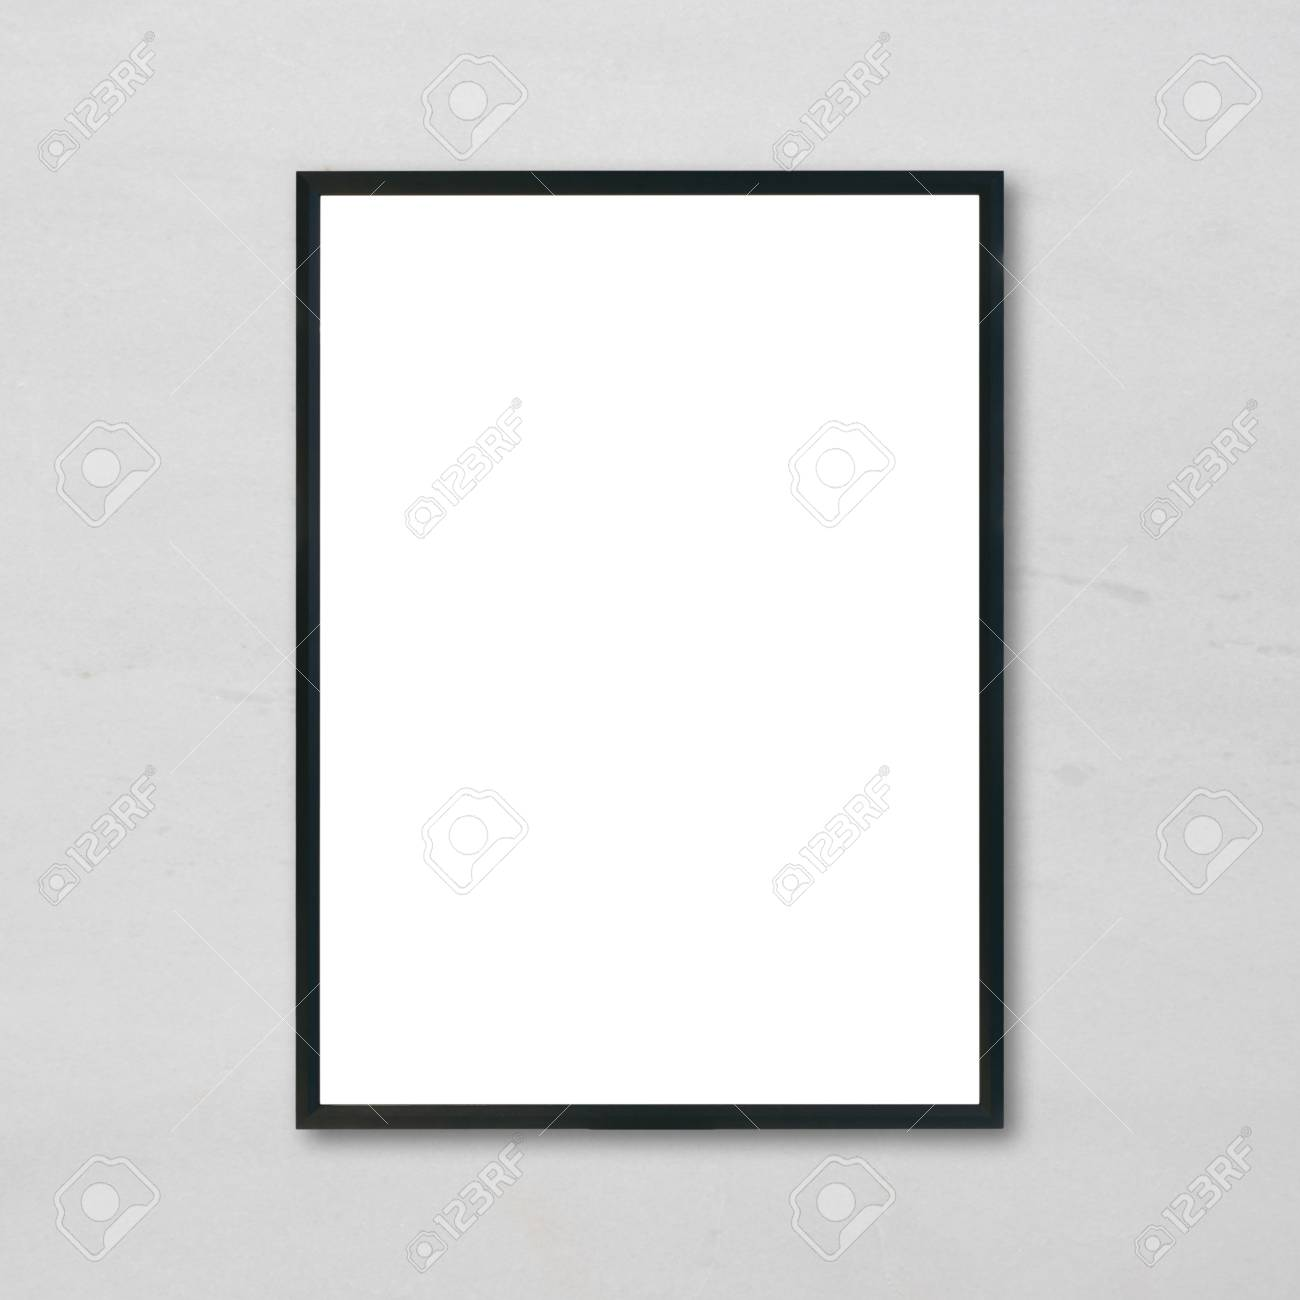 Mock Up Blank Poster Picture Frame Hanging On White Marble Wall Background In Room